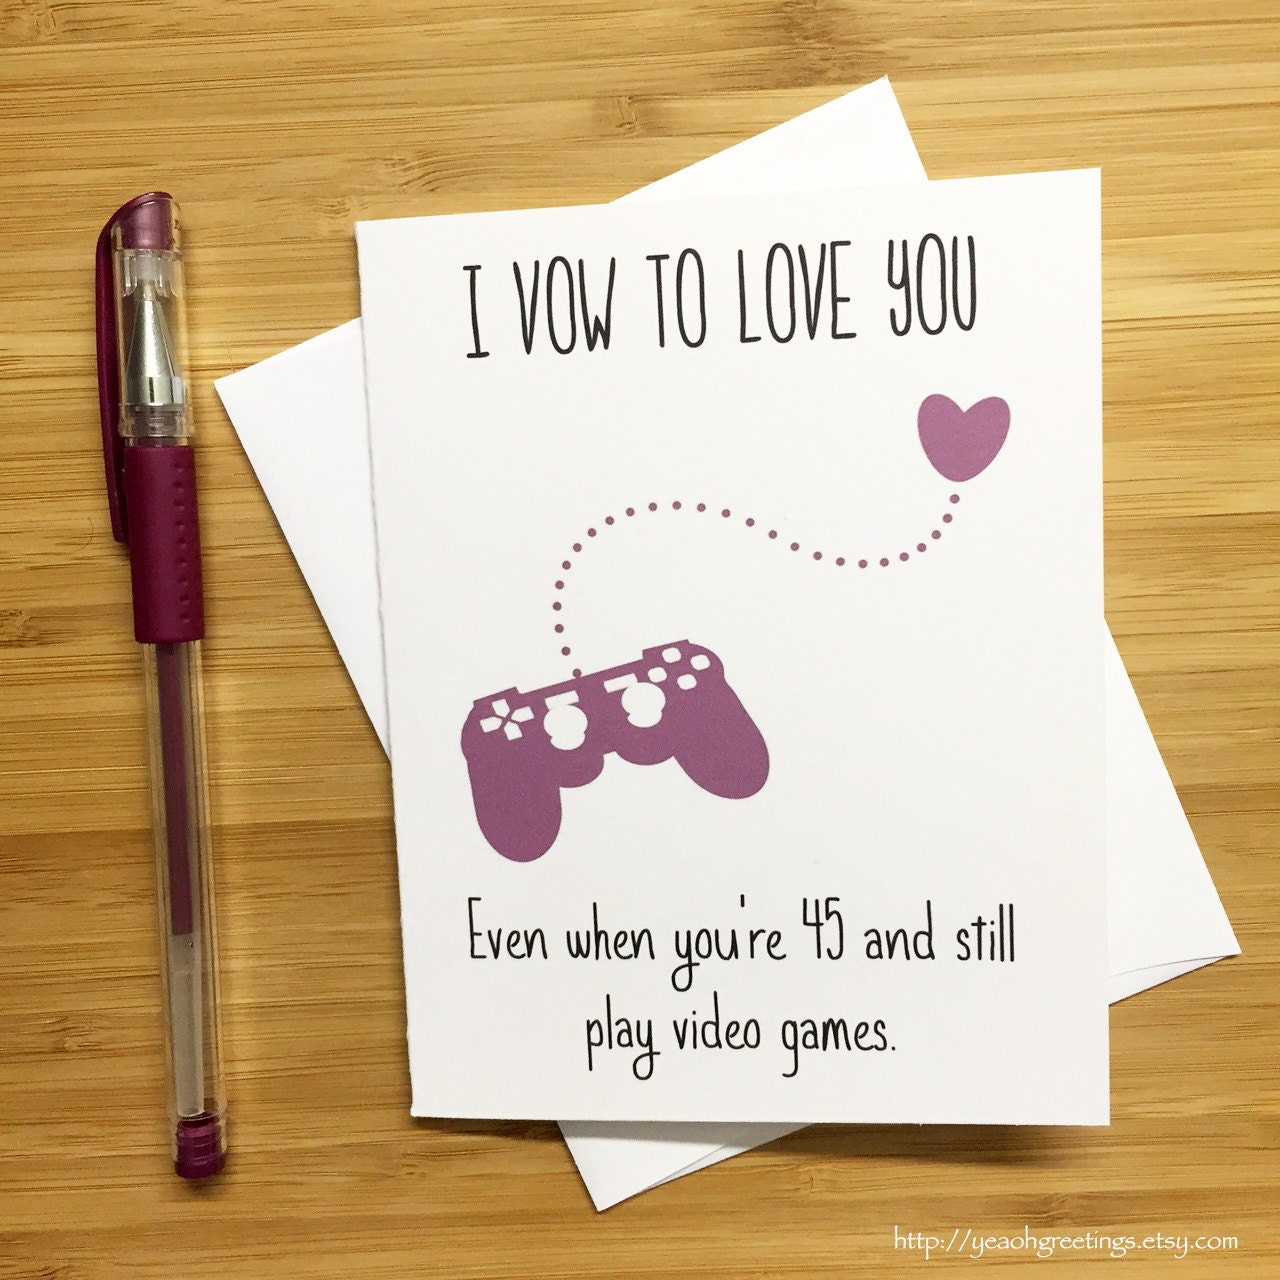 New Diy Handmade Creative Albums Romantic Souvenir: Cute Love Card For Video Game Lovers Happy Anniversary Card